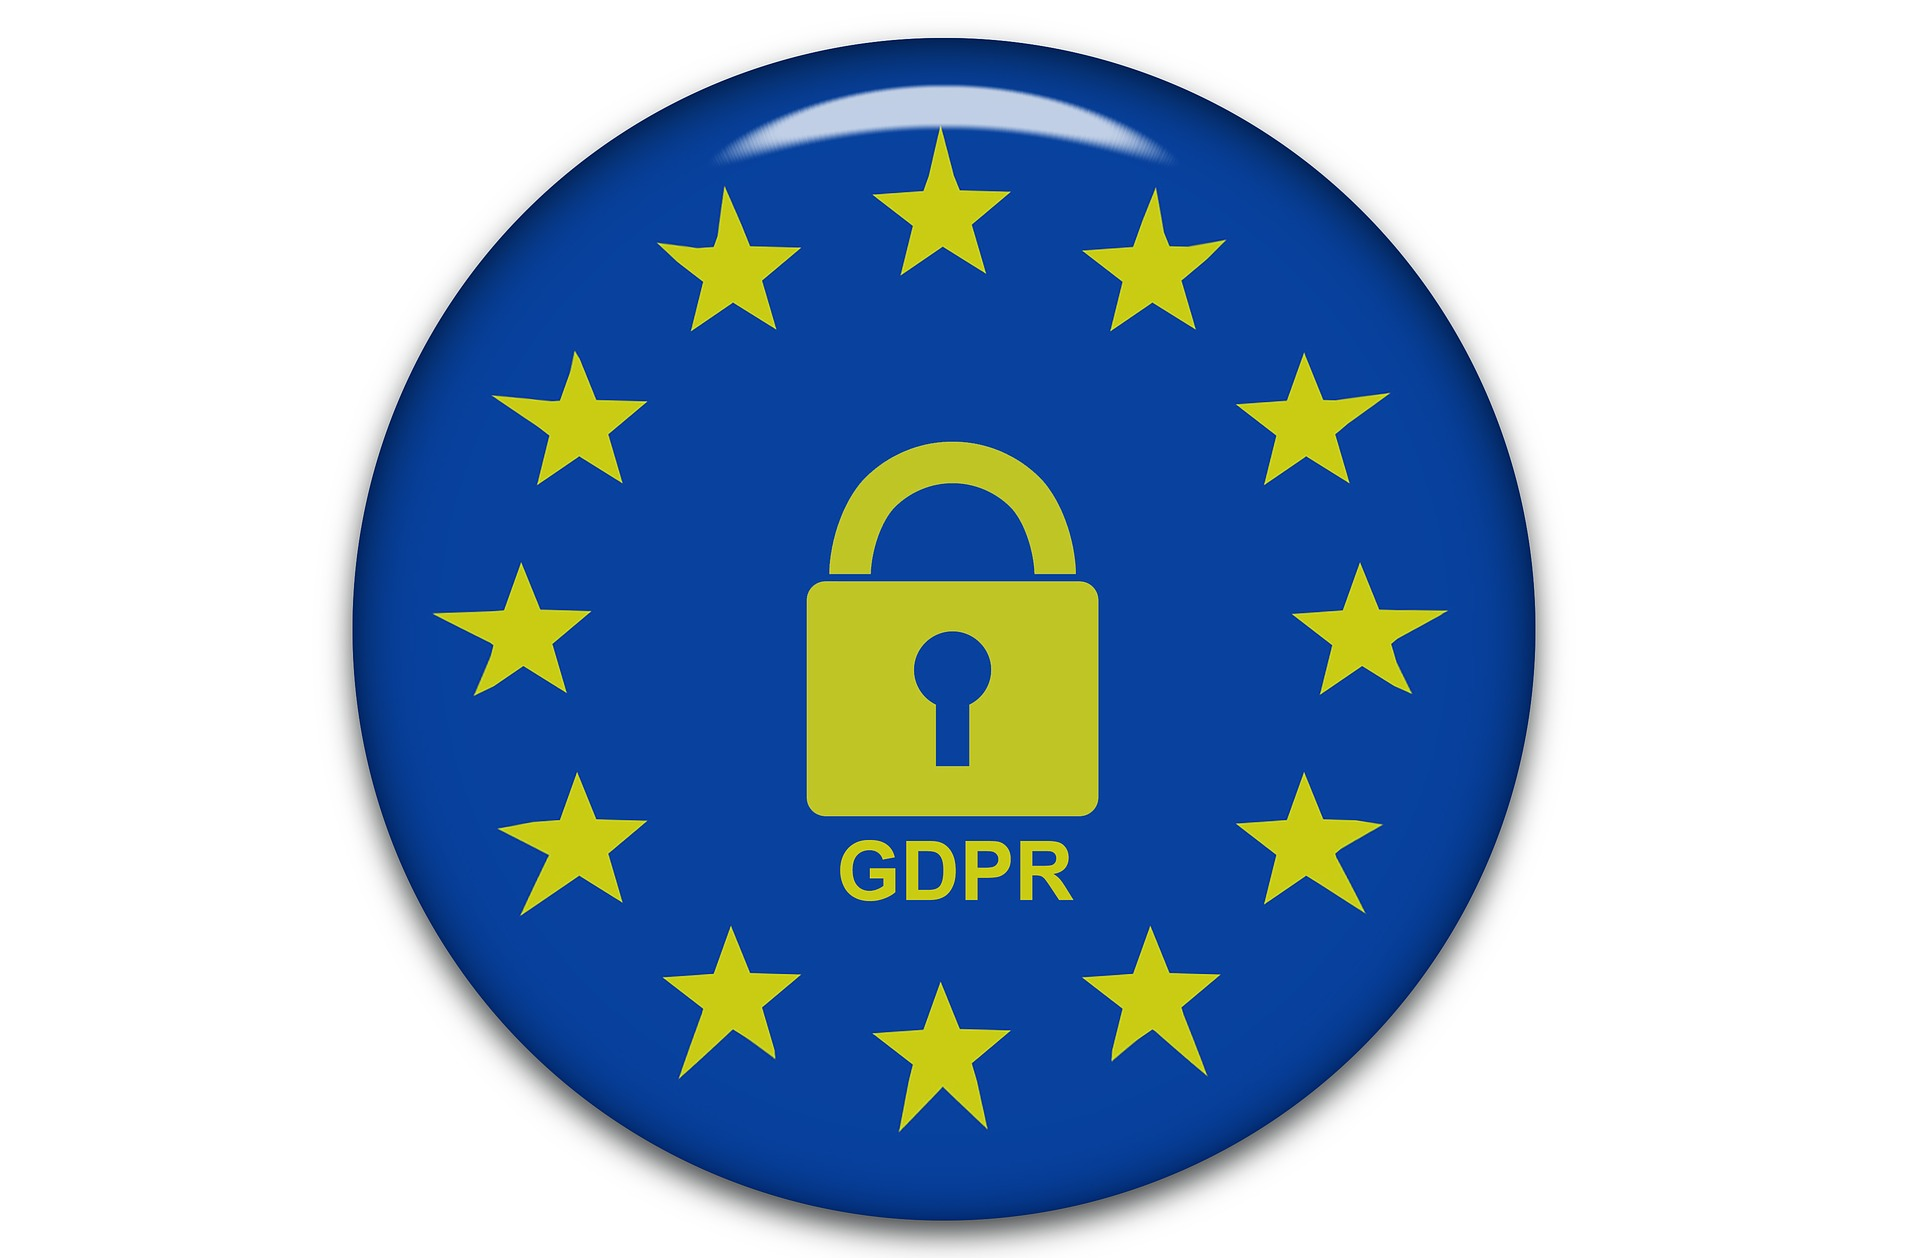 Planbox and GDPR - Our Commitment to Data Privacy